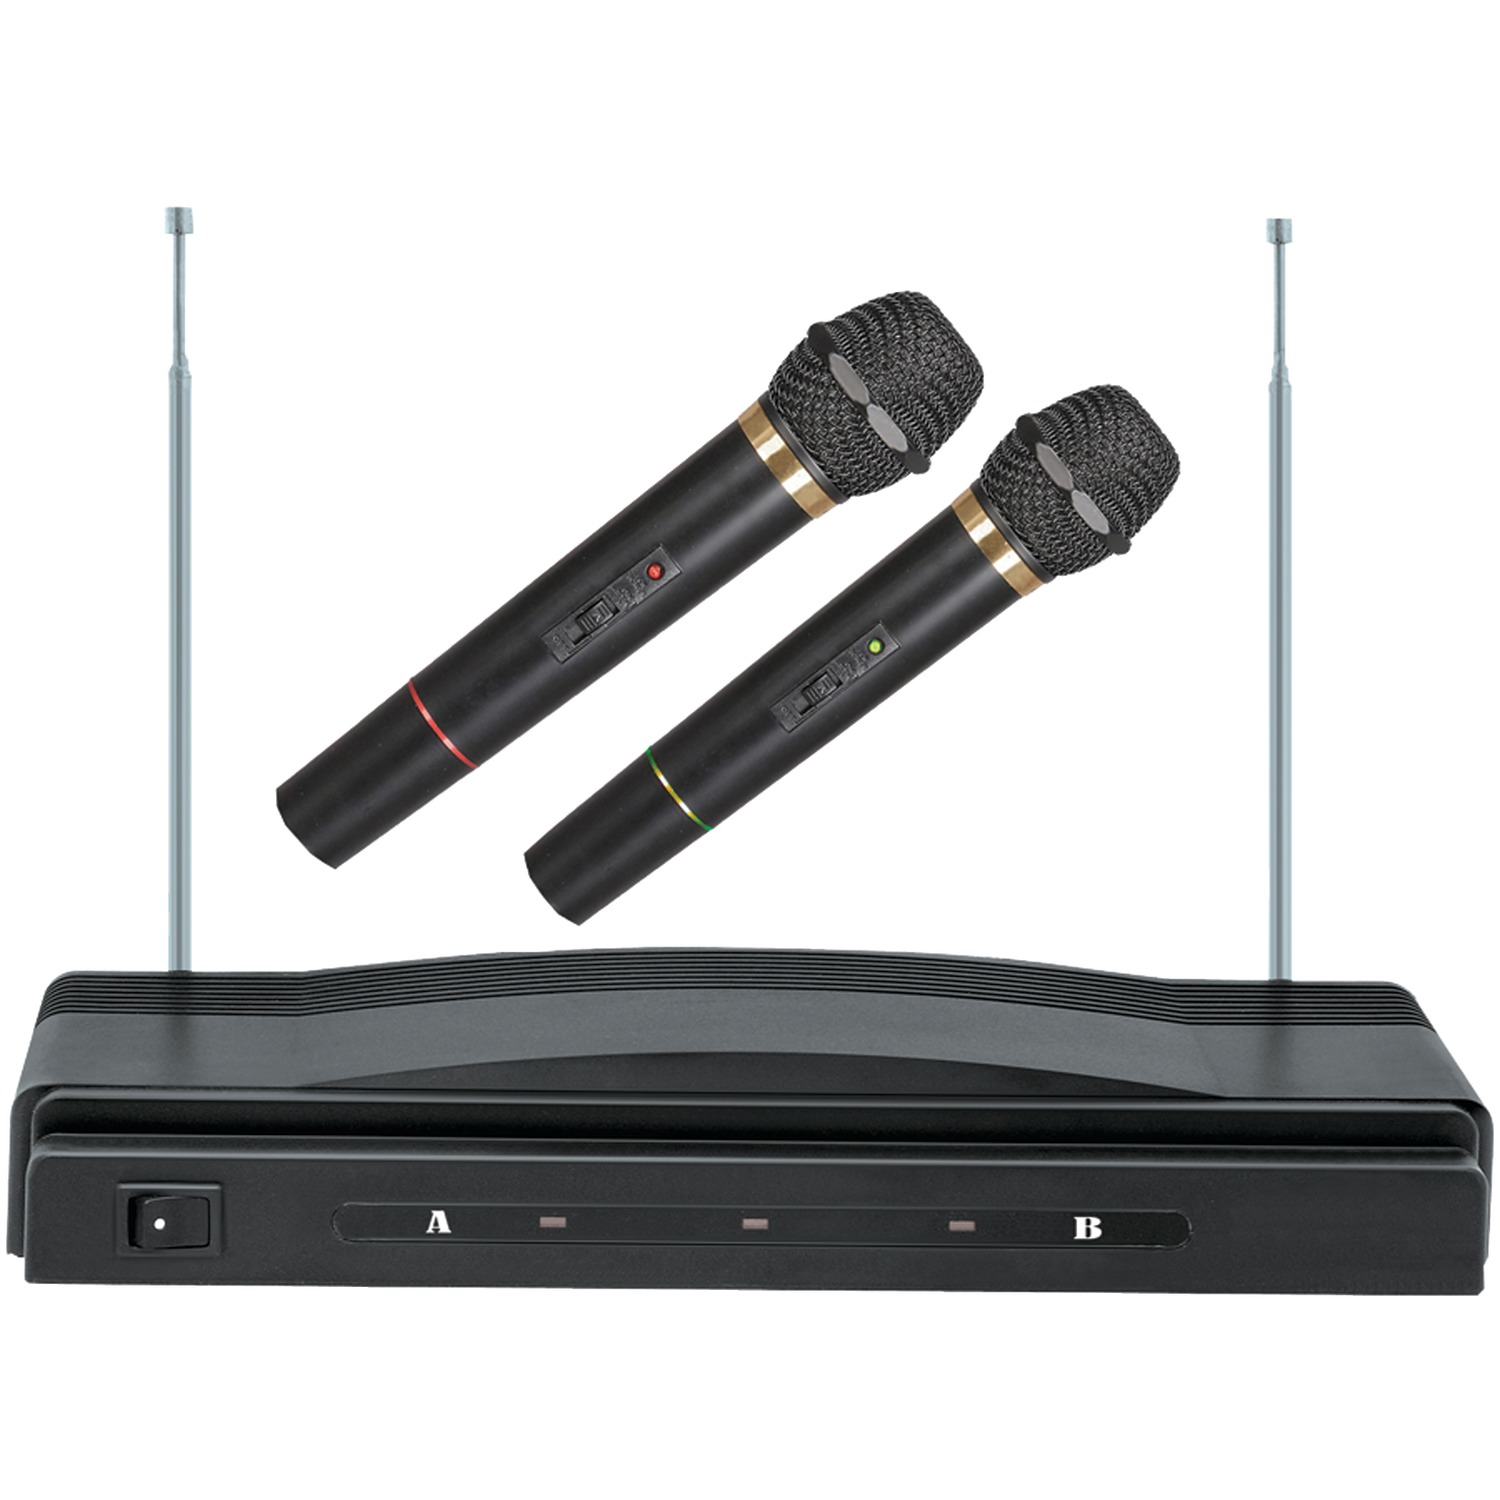 supersonic sc 900 professional dual wireless microphone system. Black Bedroom Furniture Sets. Home Design Ideas